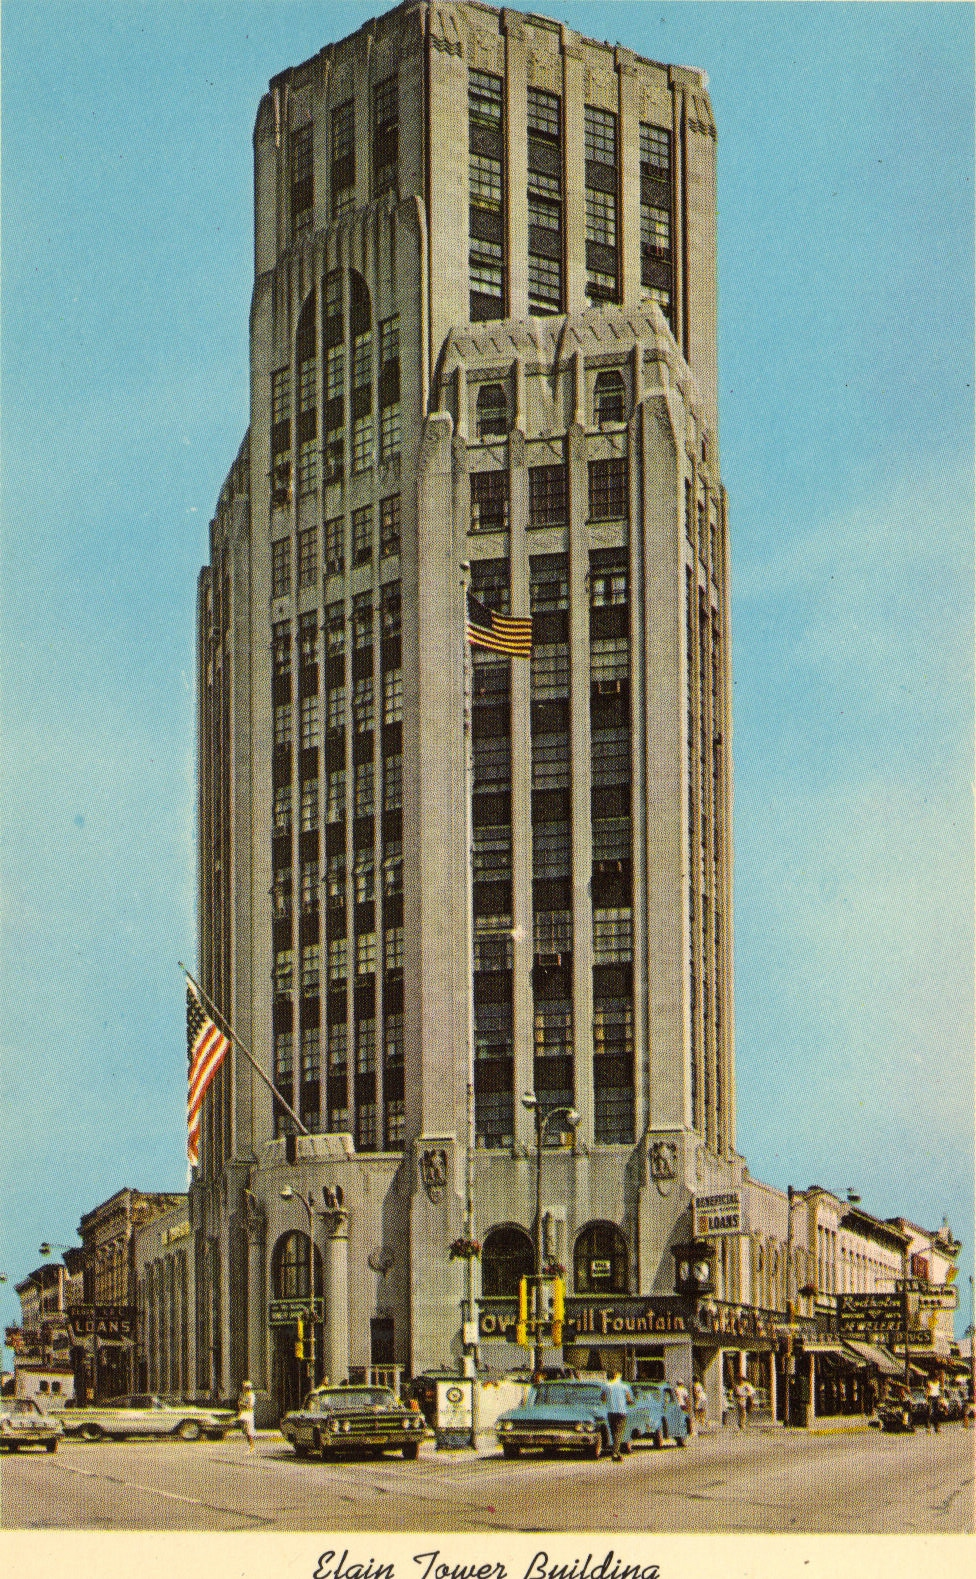 Elgin-Tower-Building-1929.jpg